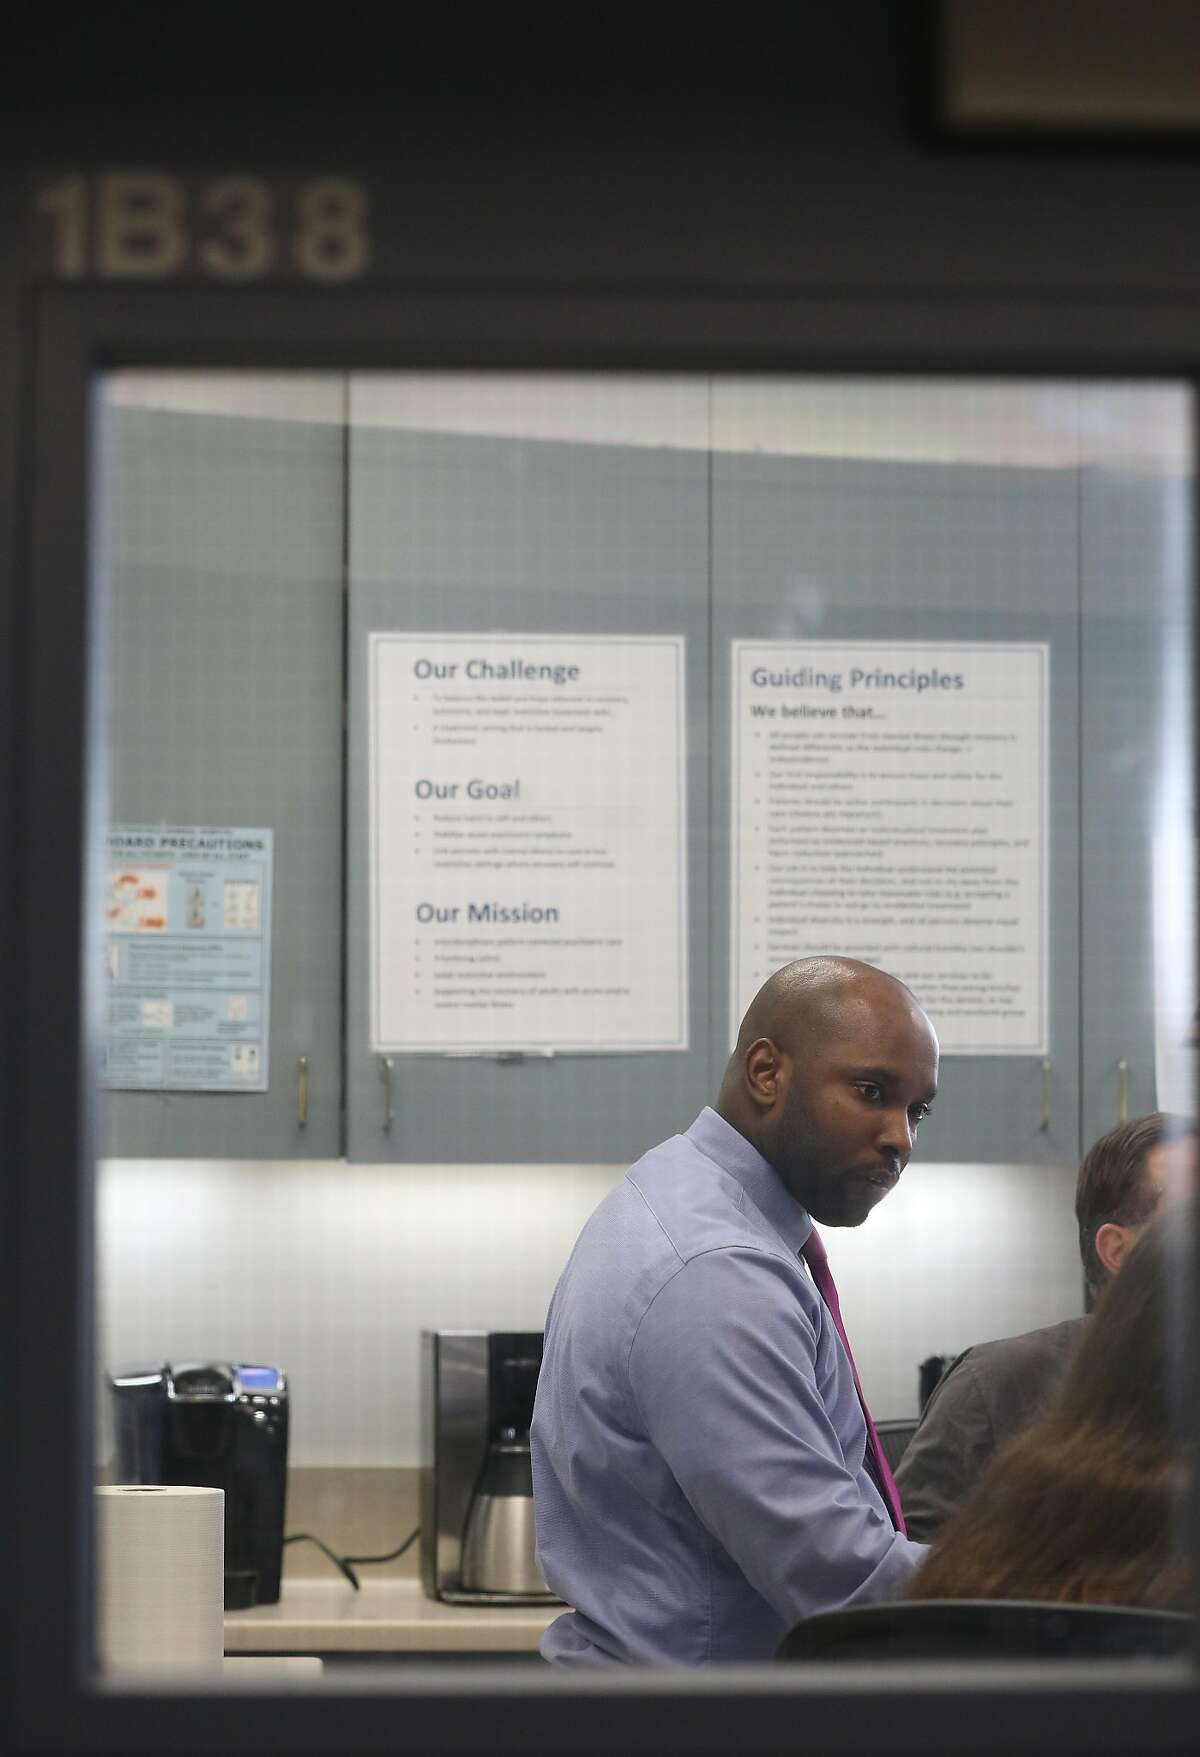 Anton Bland, medical director Psychiatric Emergency Services, works with staff during a staff meeting at Psychiatric Emergency Services at Zuckerberg San Francisco General on Monday, February 11, 2019 in San Francisco, Calif.